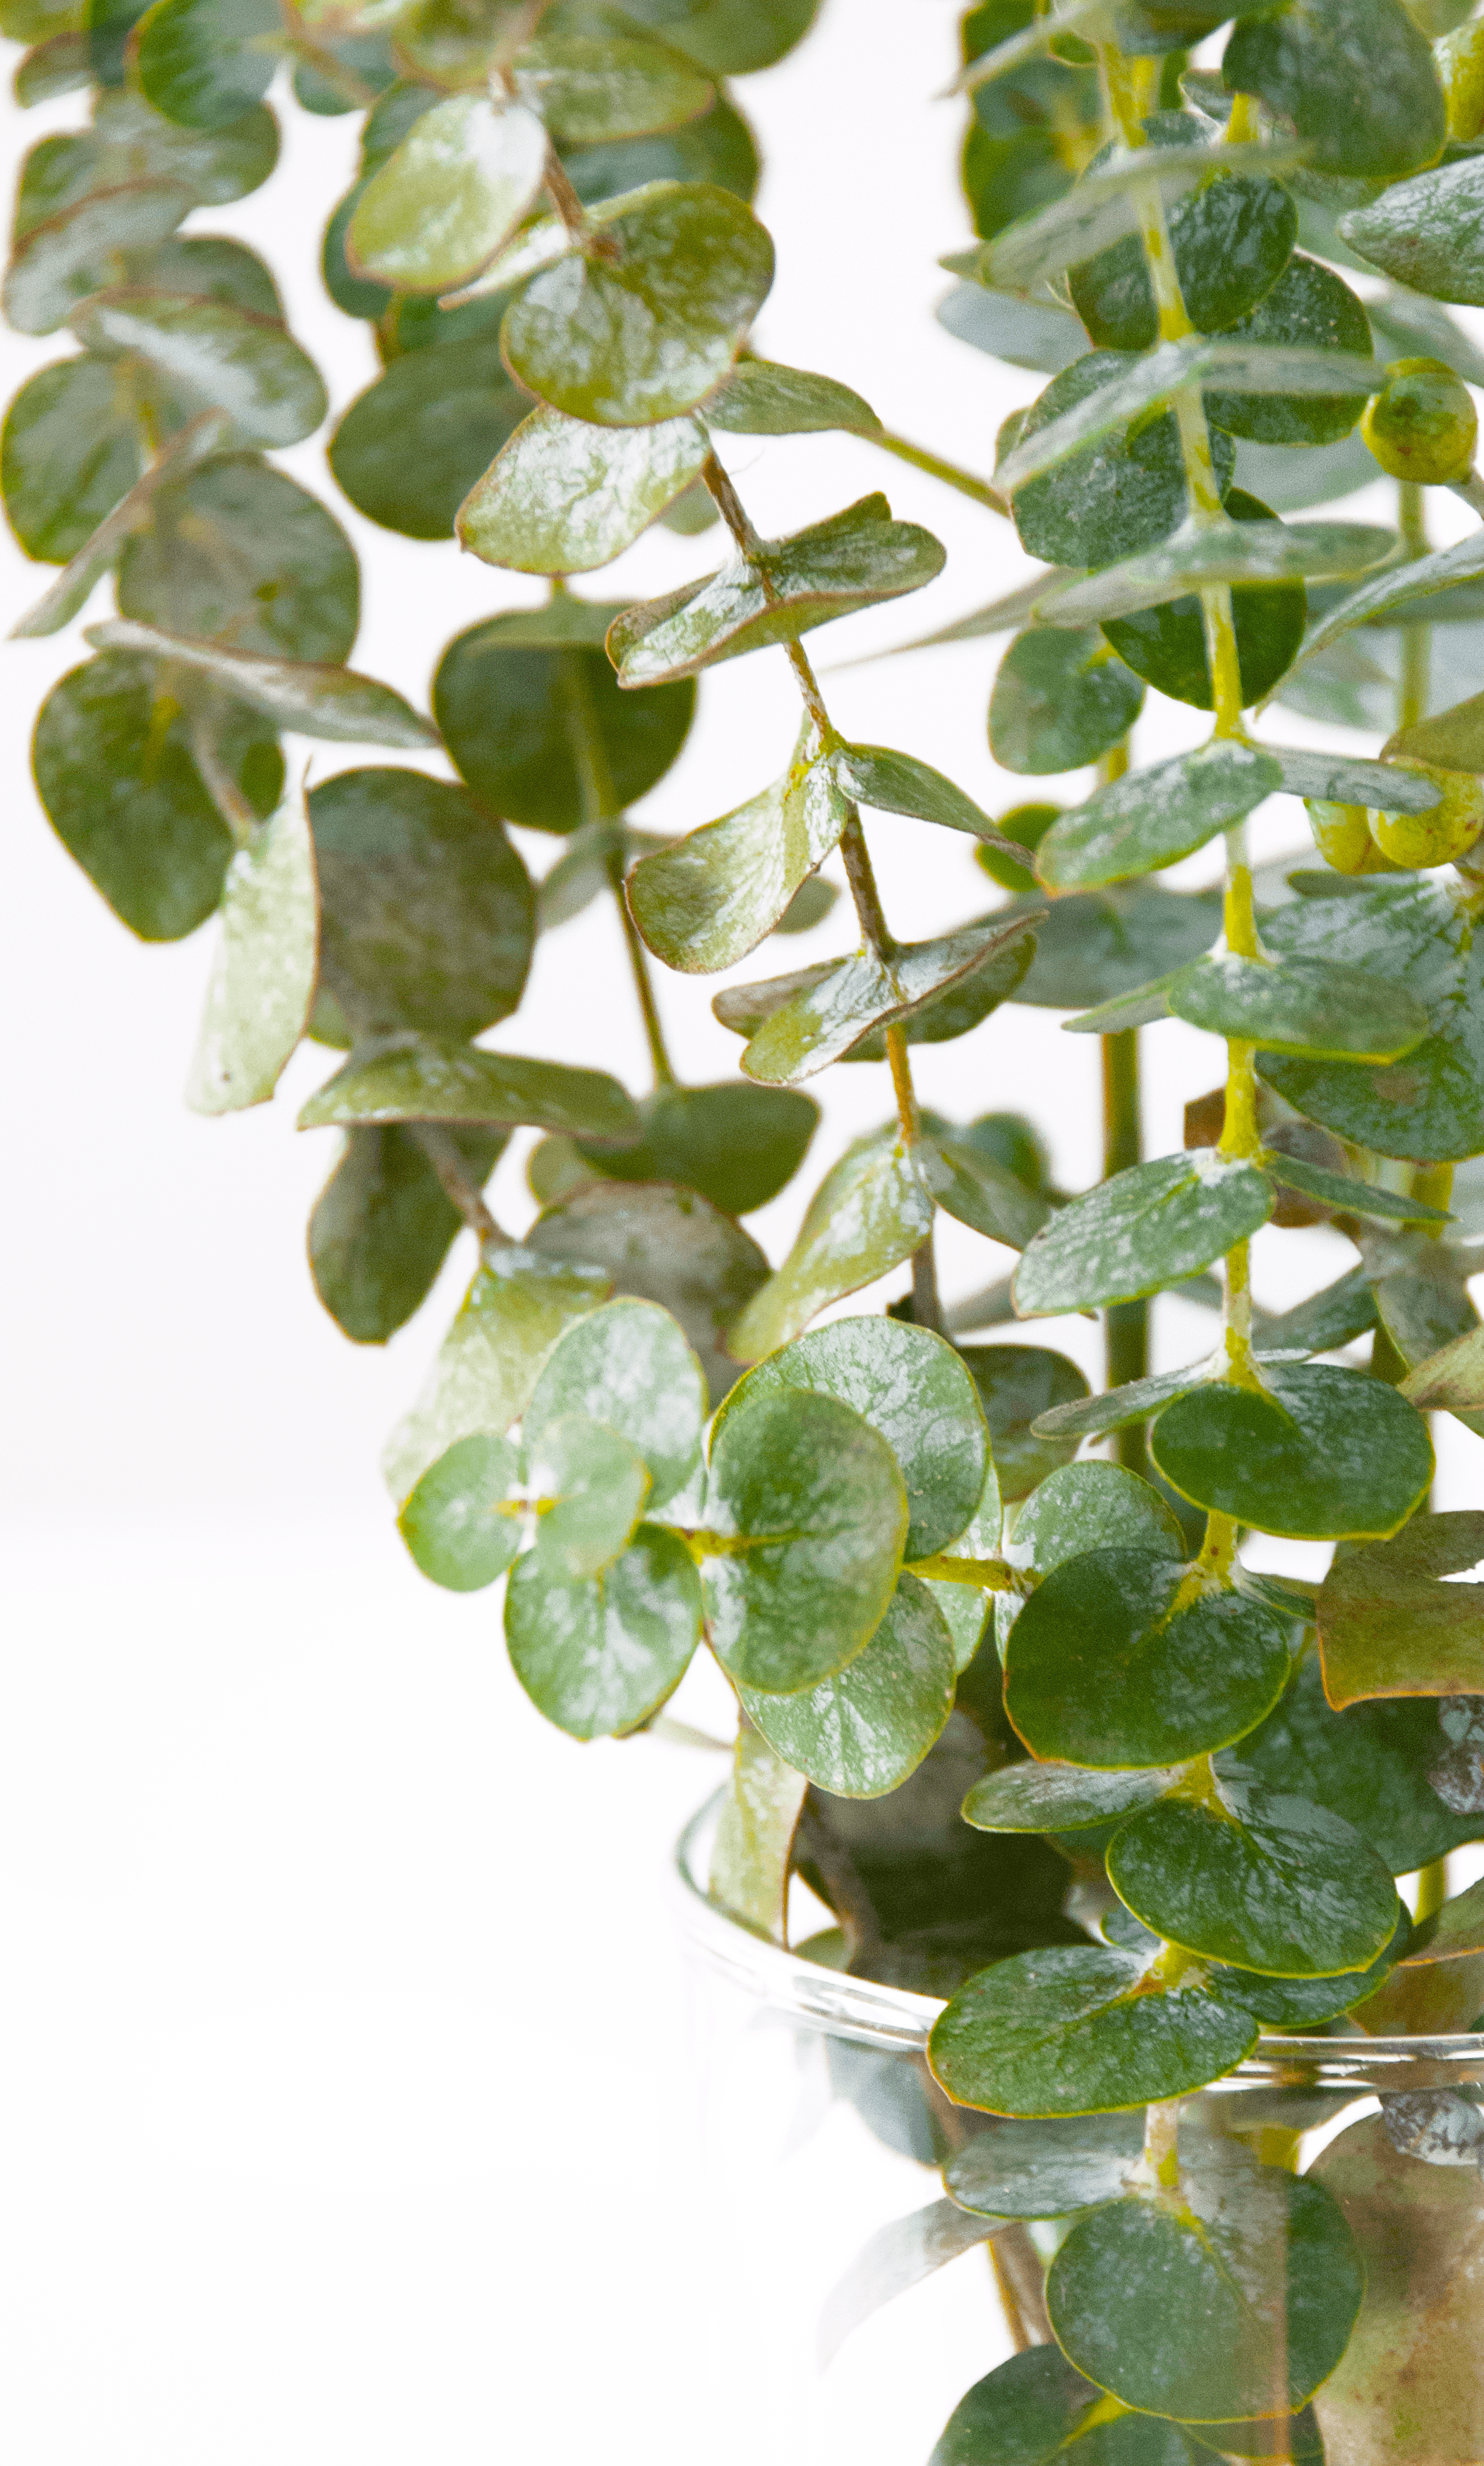 Eucalyptus leaves are packed with oil.